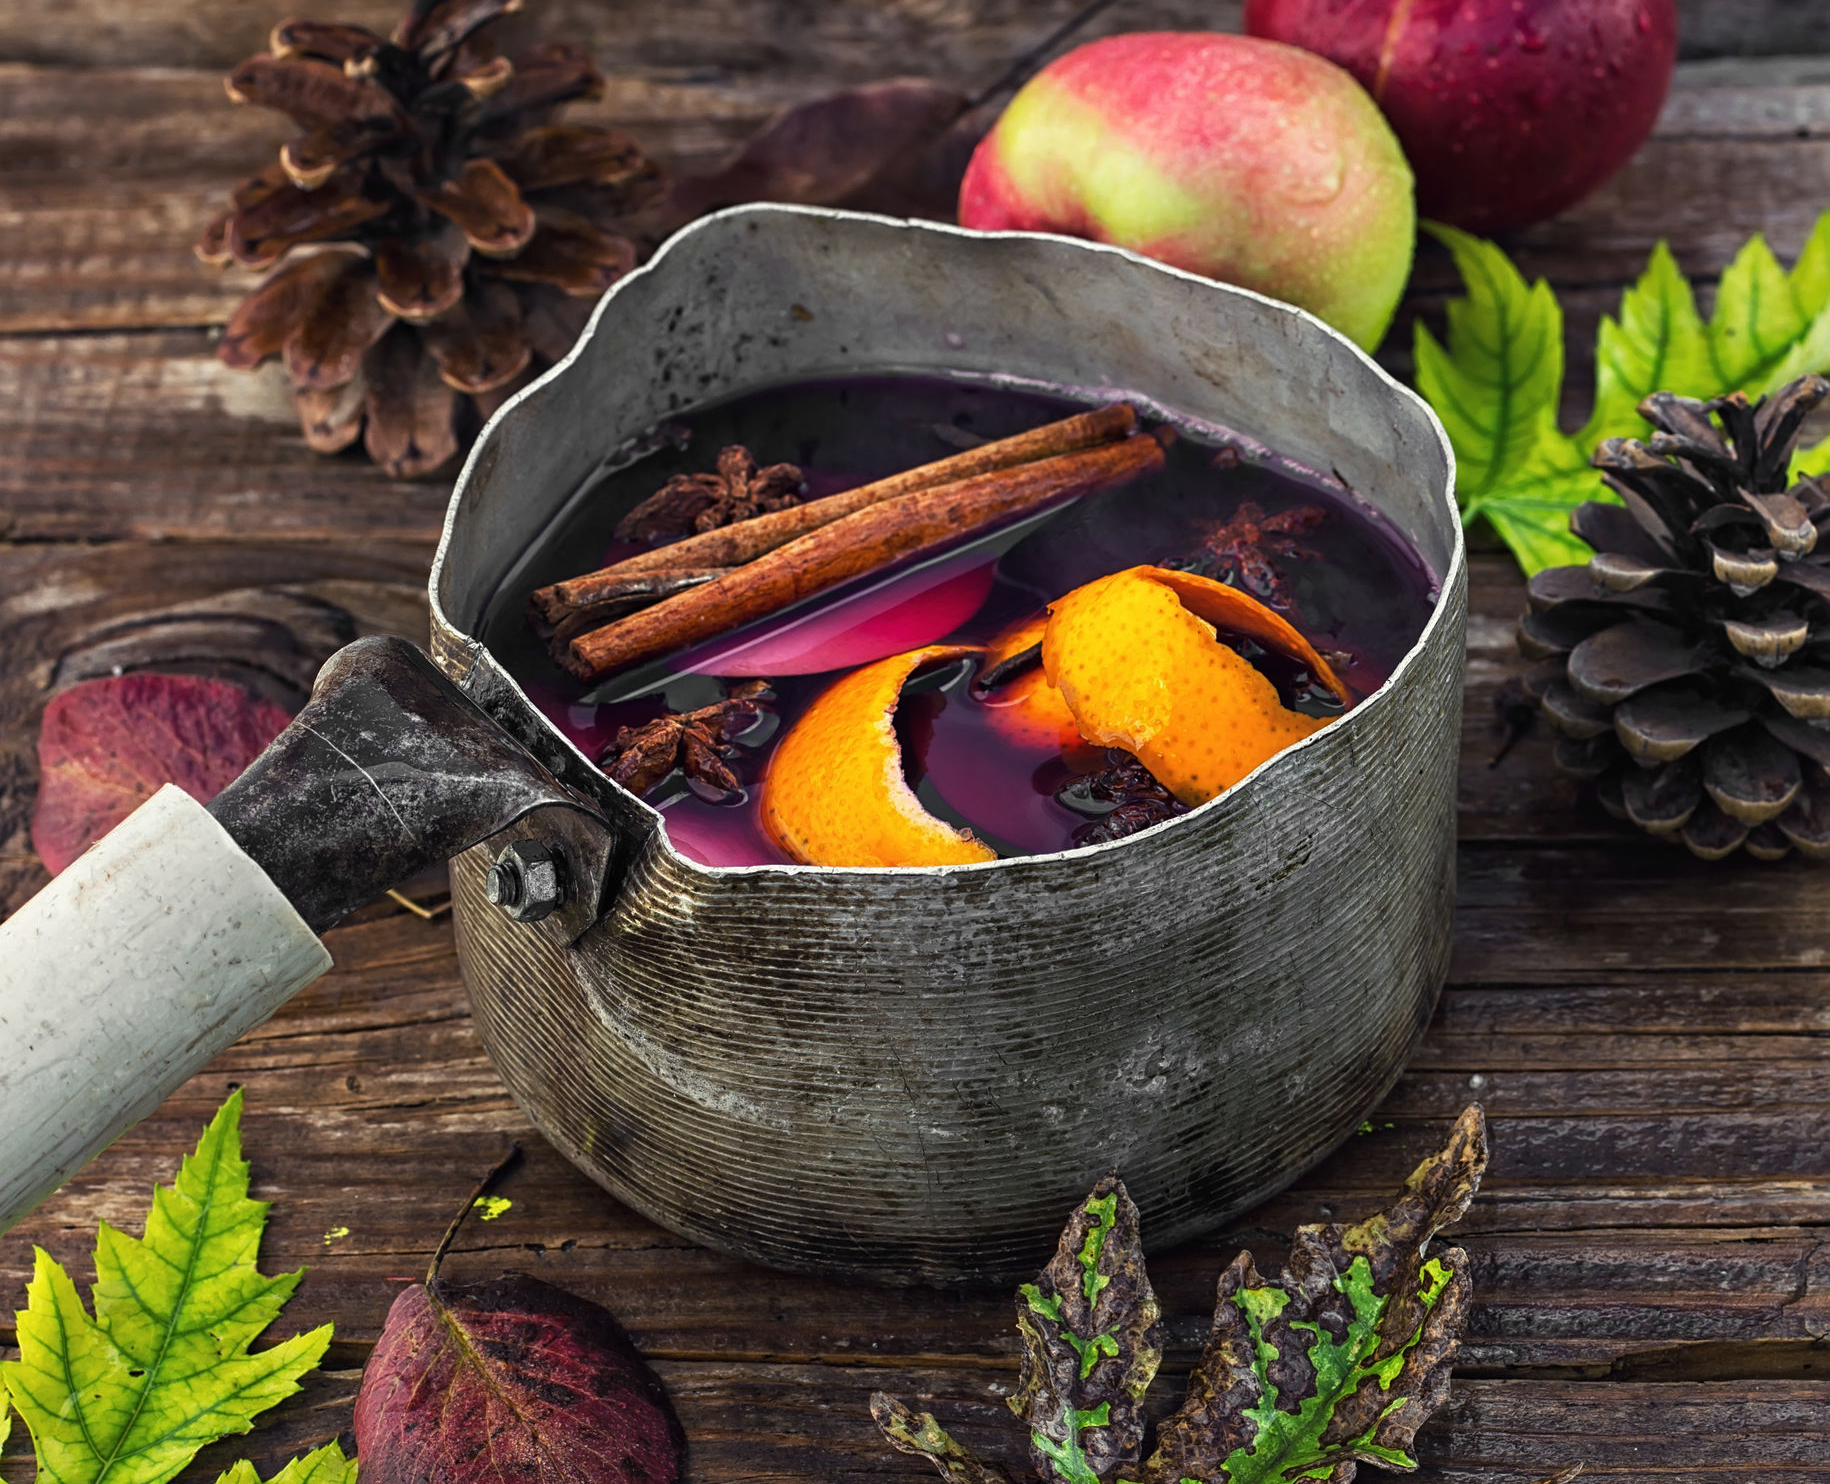 Witches Brew Recipe For Traditional Samhain Cider Wine White Magick Alchemy